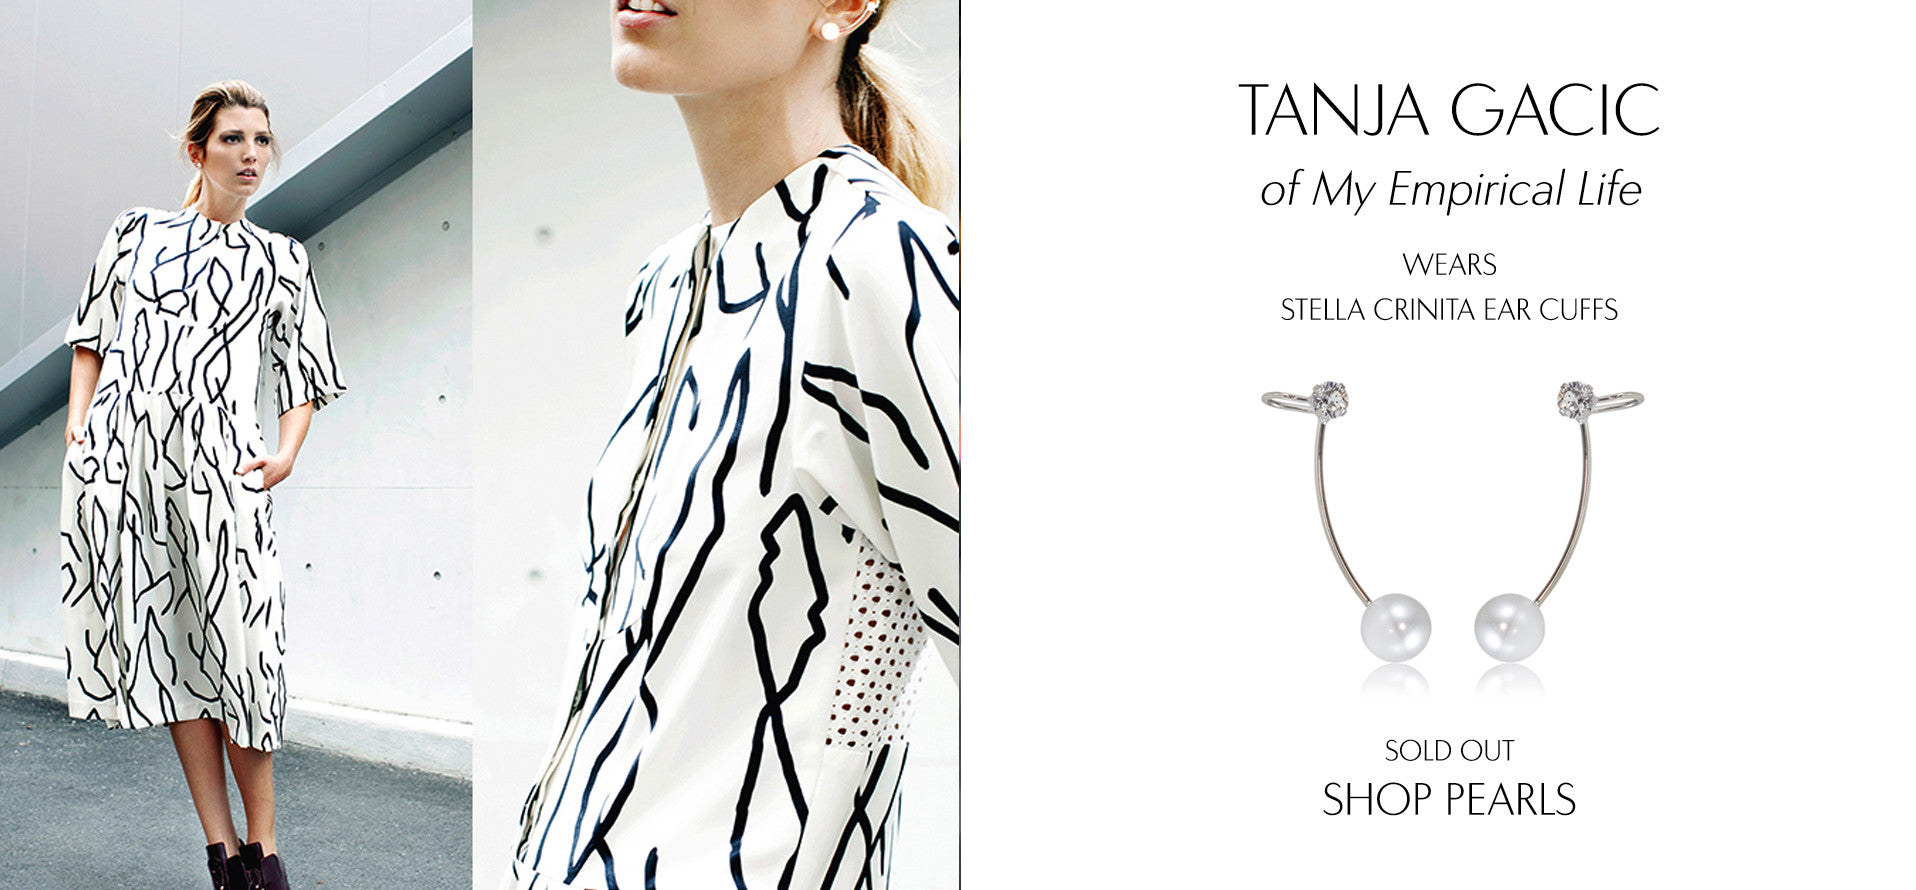 My EmpiricalLife - Fashion Blog by Tanja Gacic wears Sarina Suriano Stella Crinita pearl earcuffs